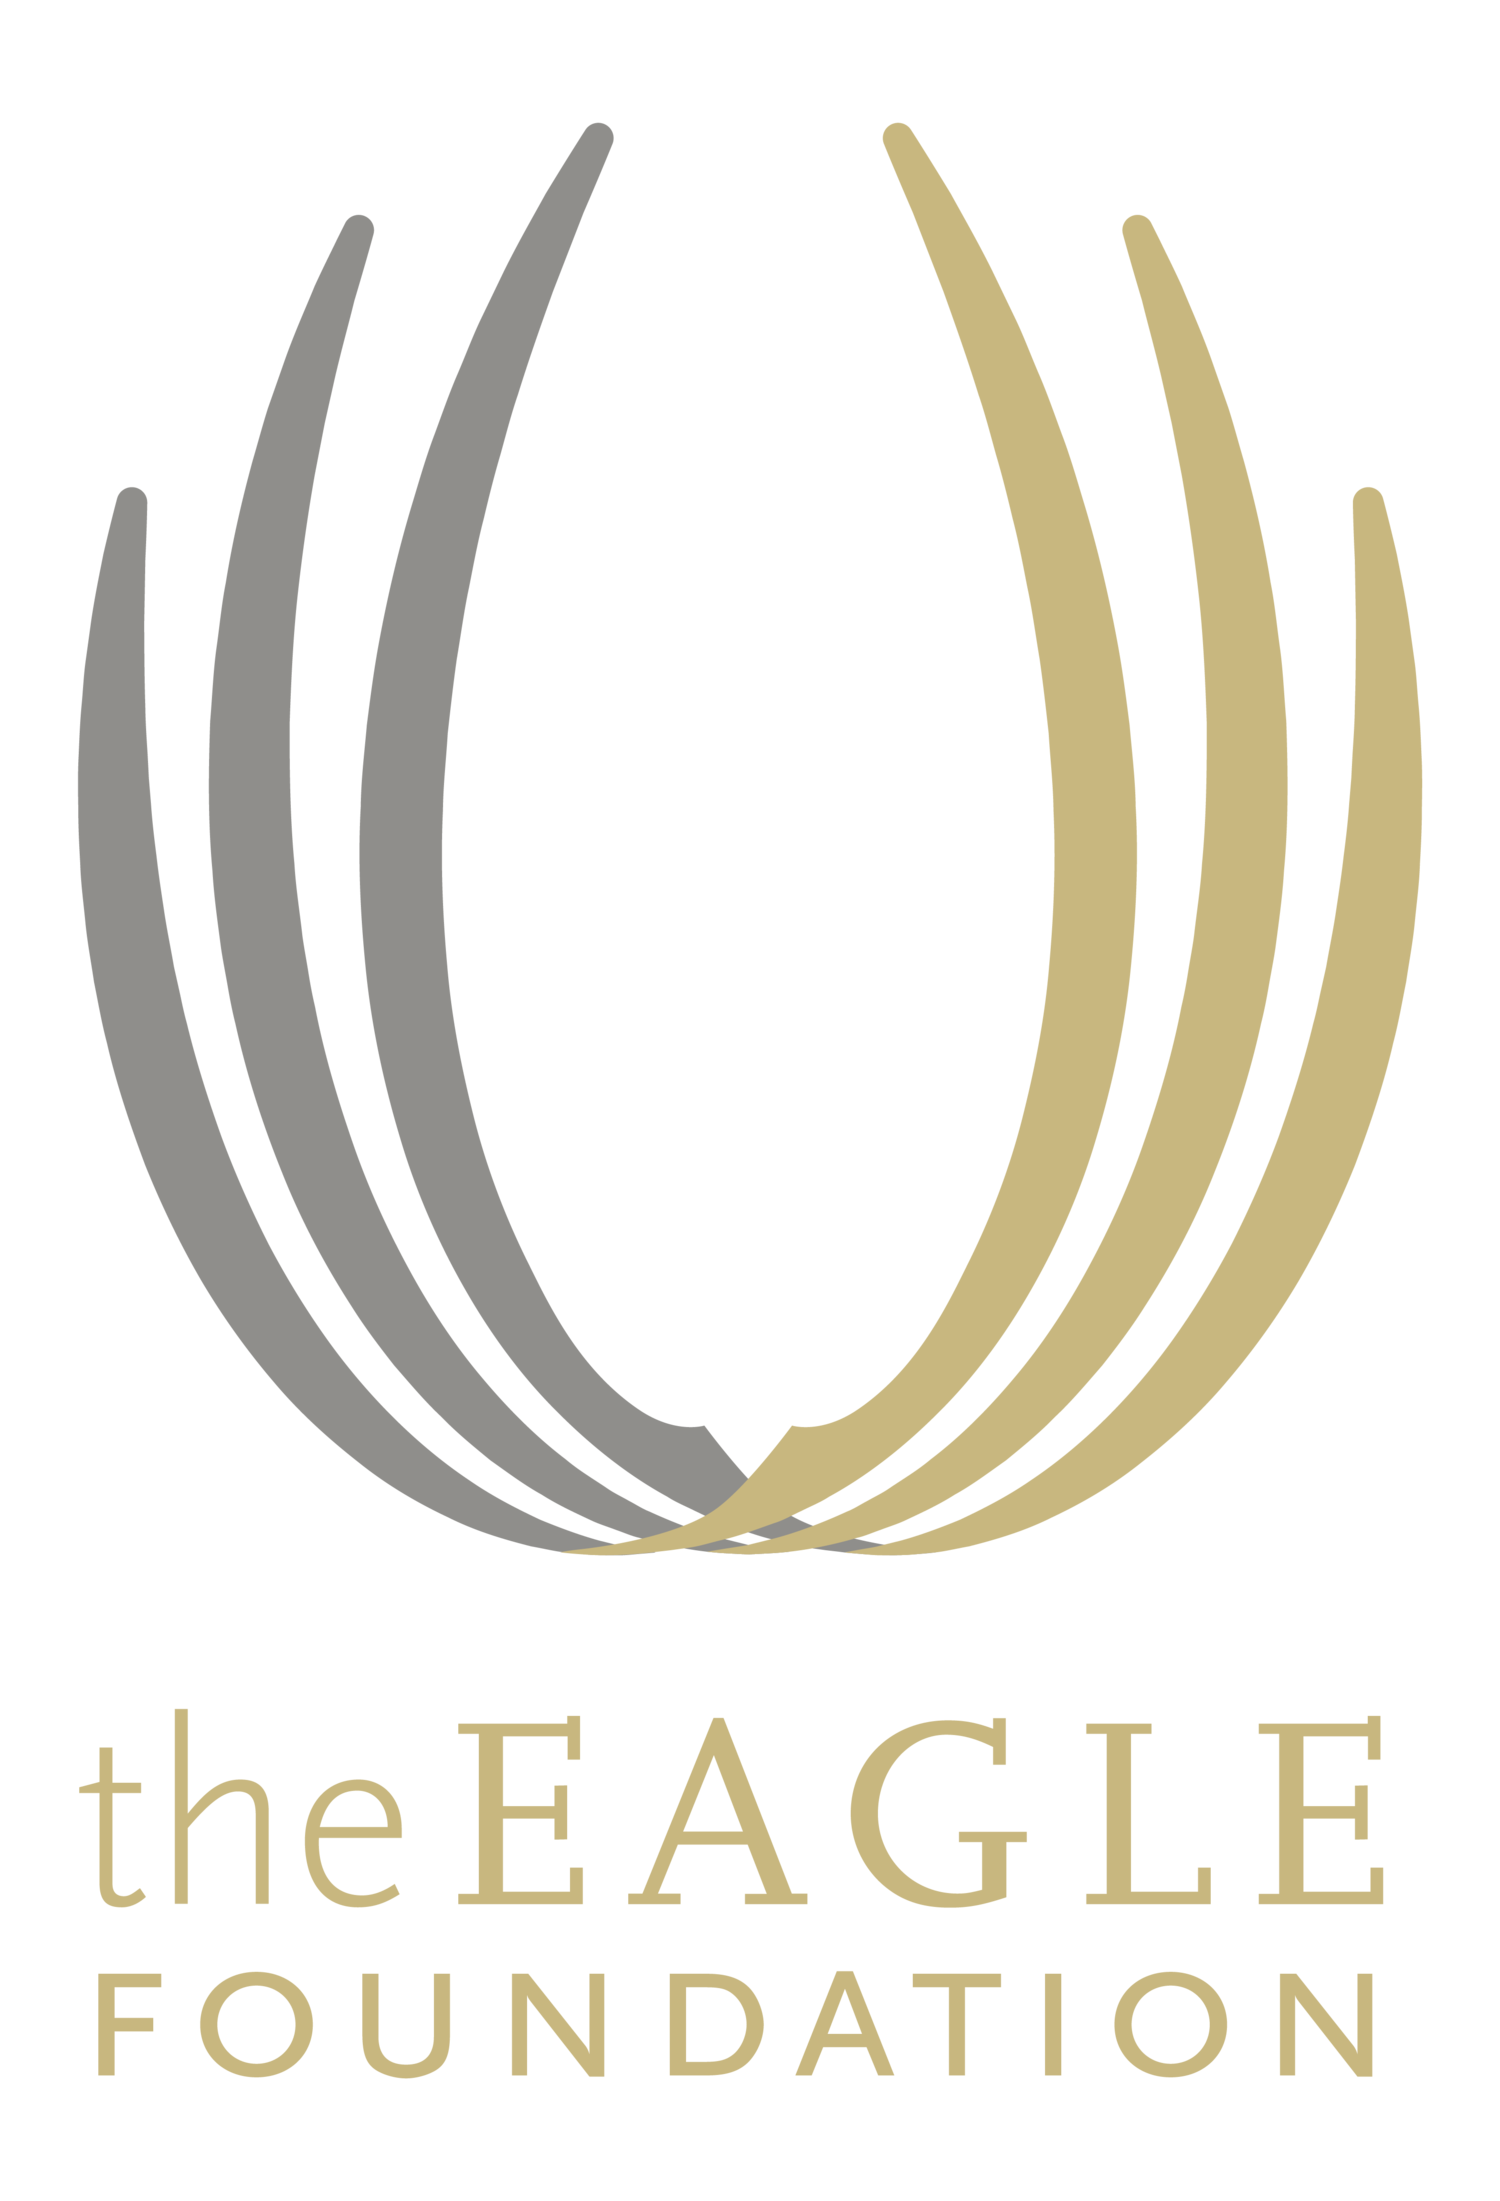 The Eagle Foundation